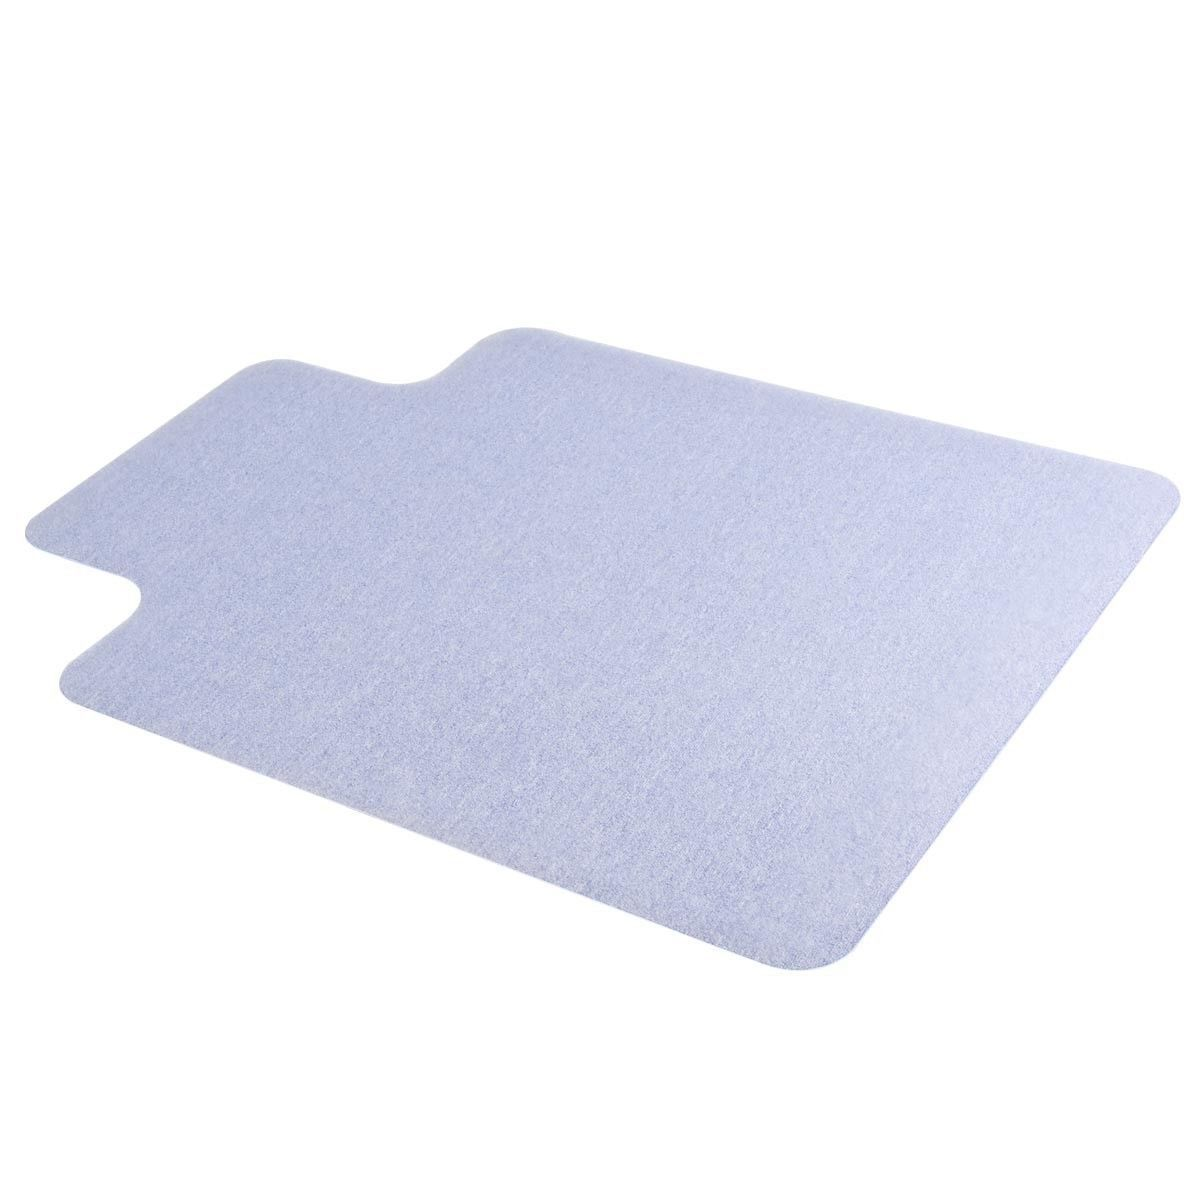 buy 900x1200mm home office carpet protector chair floor mat 150mm thick with lip from reliable chair floor mat suppliers on